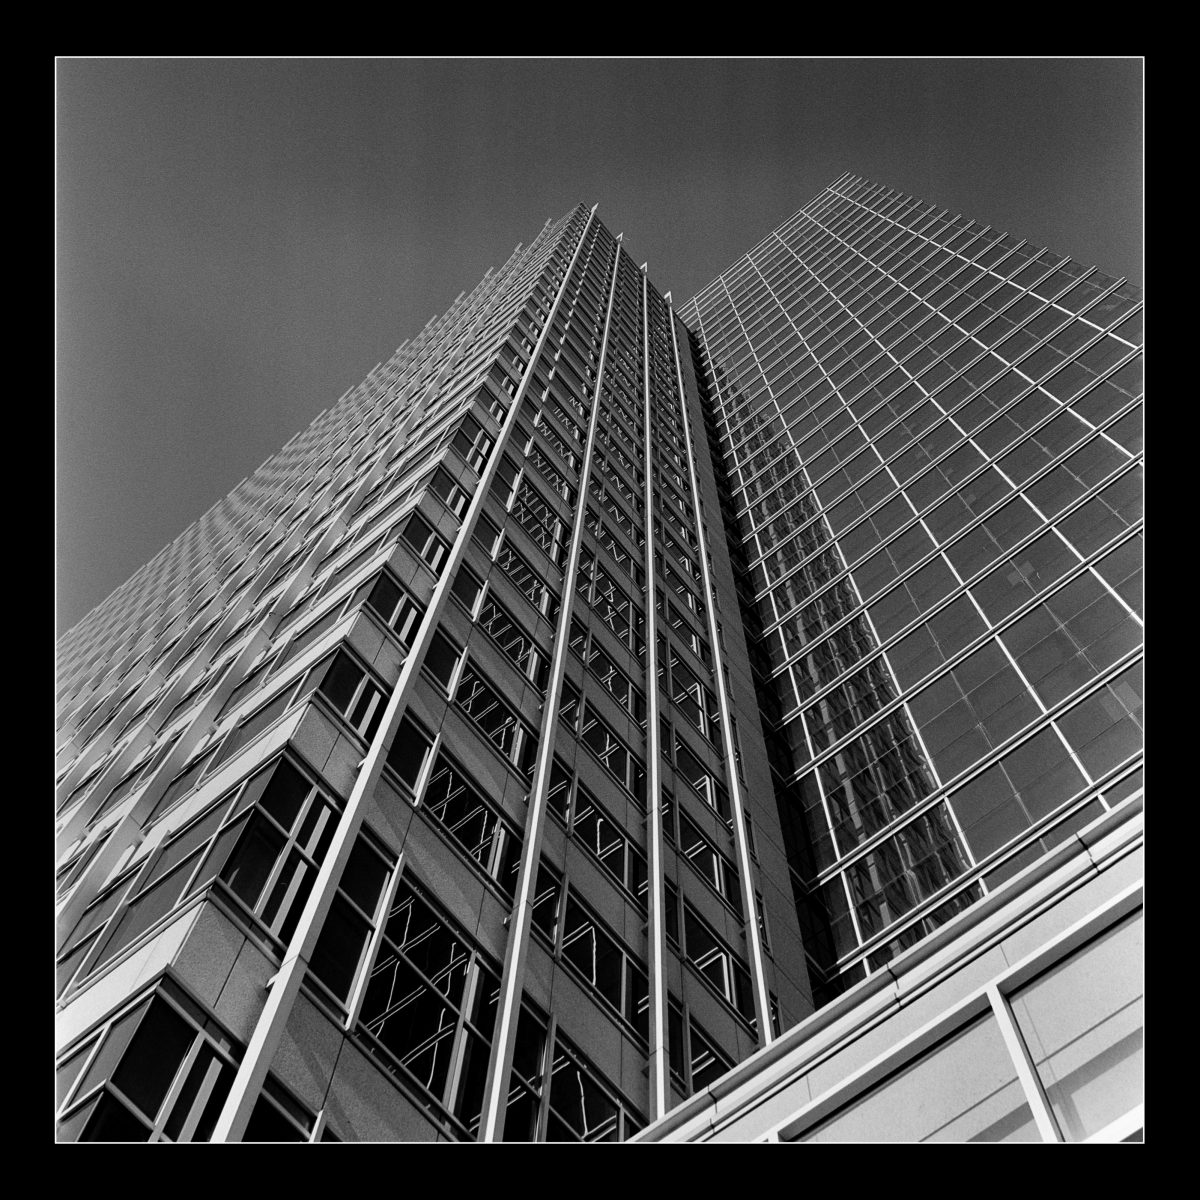 Black and white - Architectural photography